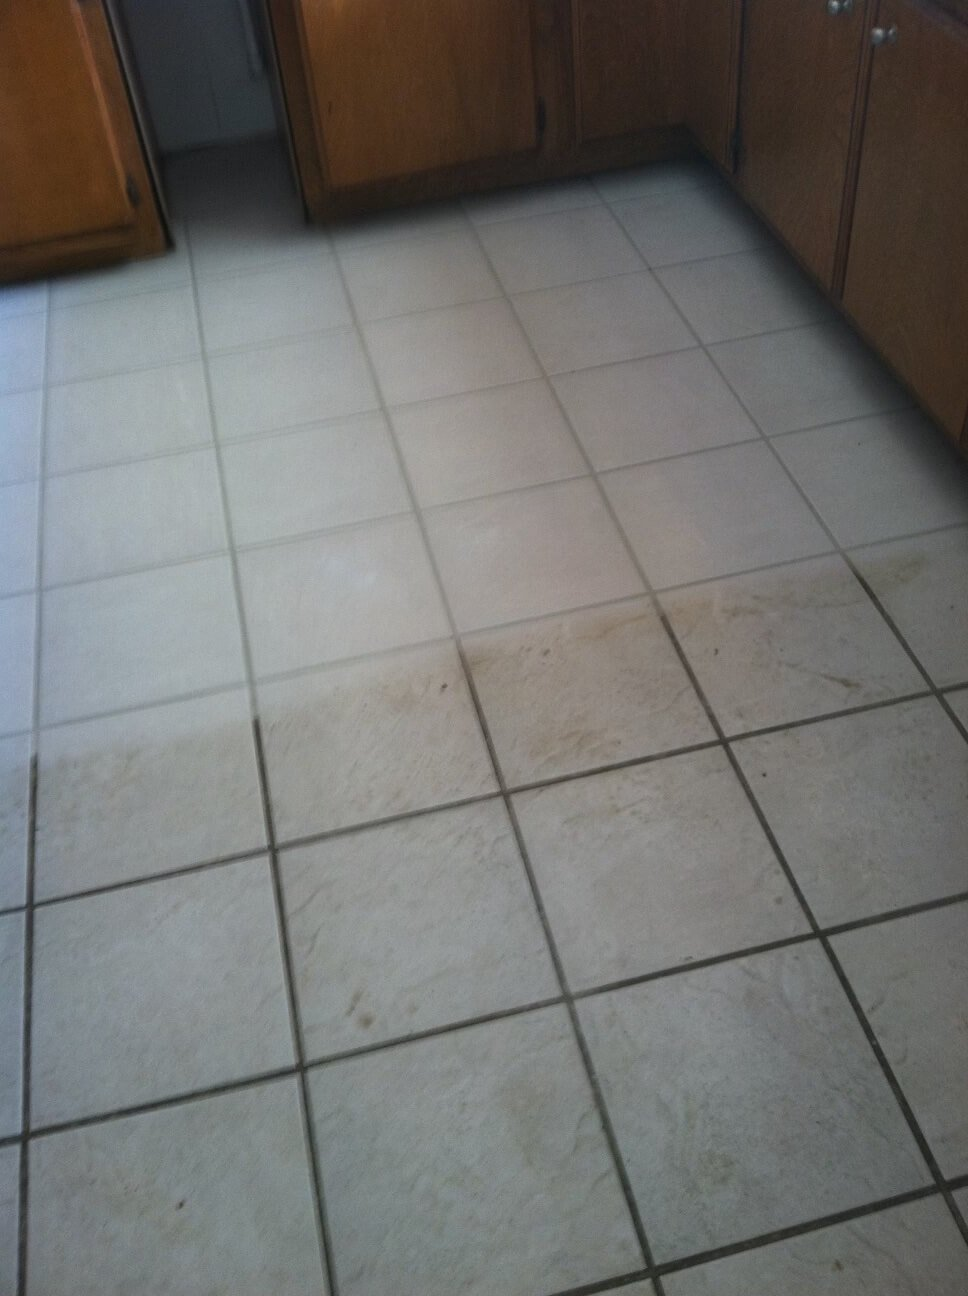 San Diego Tile cleaners